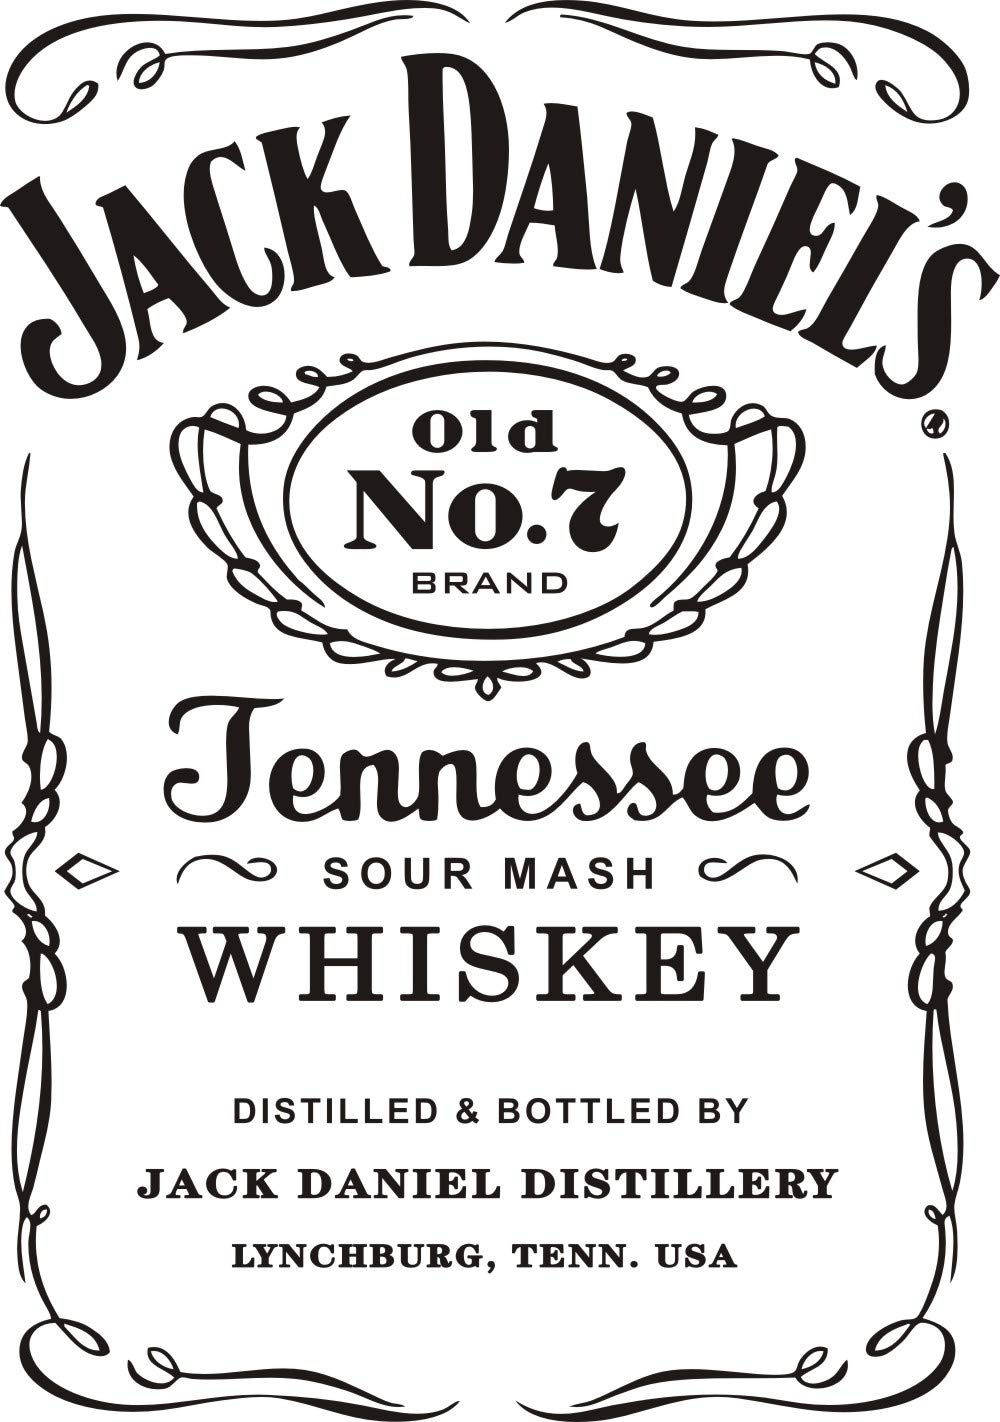 Wall Decal Jack Daniels JD Wall Decor Sticker Removable Jeness Whiskey  Carving Quotes Wall Mural Living Room Kitchen Interior Deoration Stickers  Y013 ...